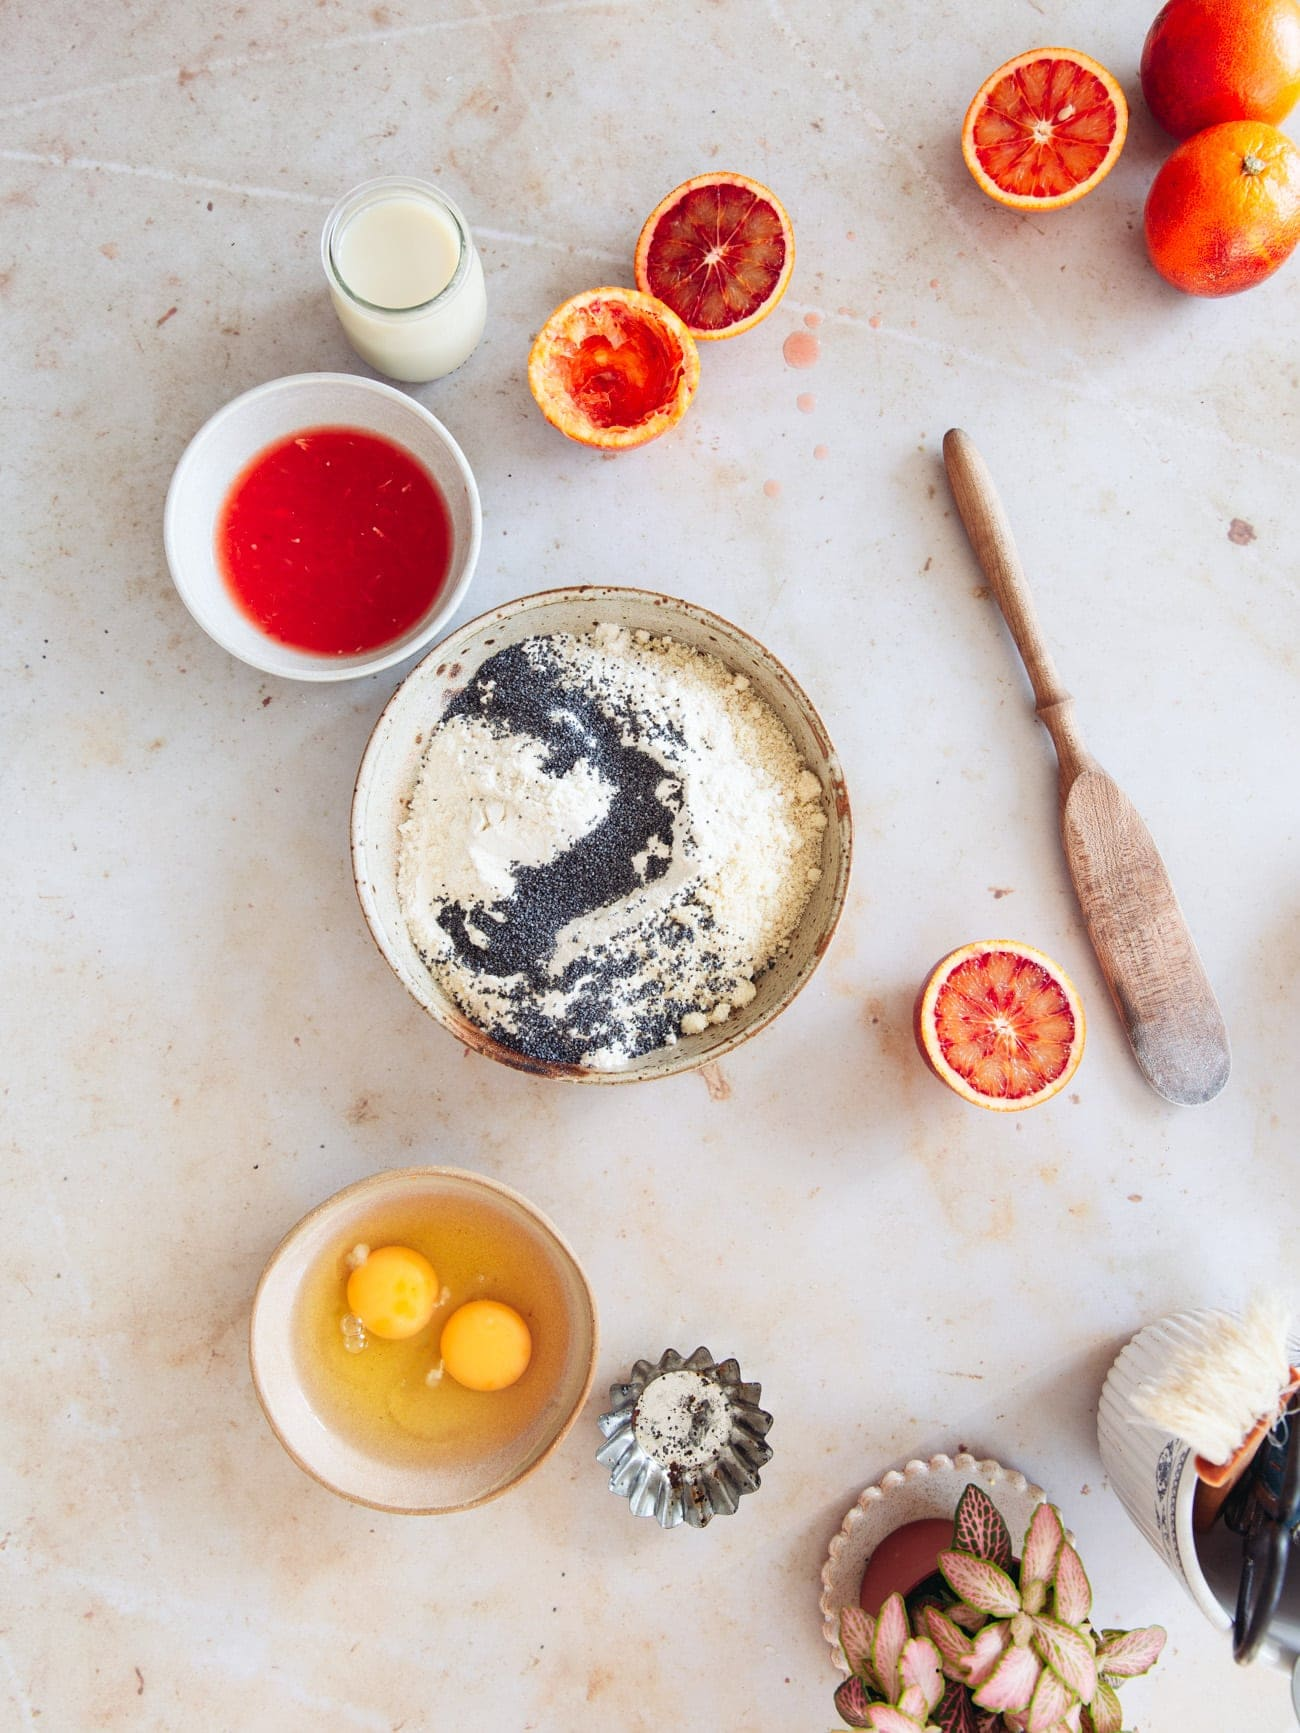 Blood Orange Poppy Seed Cake ingredients by food blogger Izy Hossack